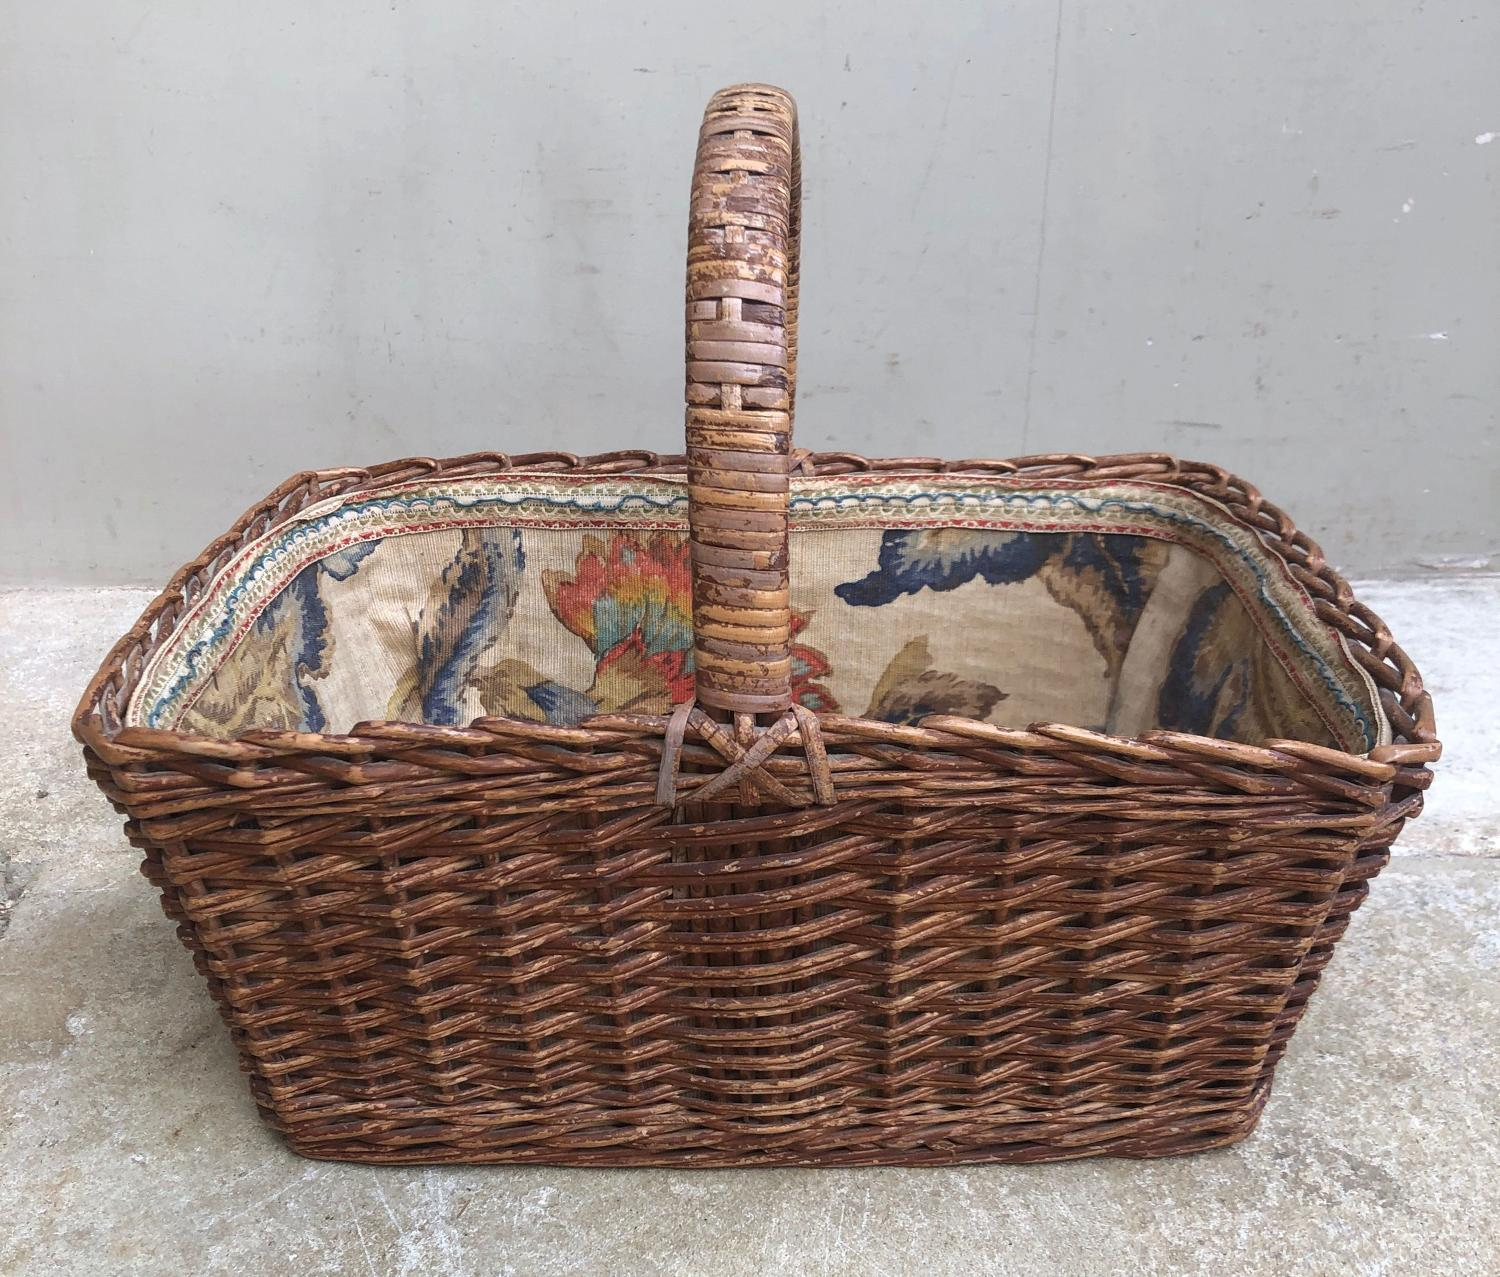 Antique Fabric Lined Edwardian Lady's Basket with Cover